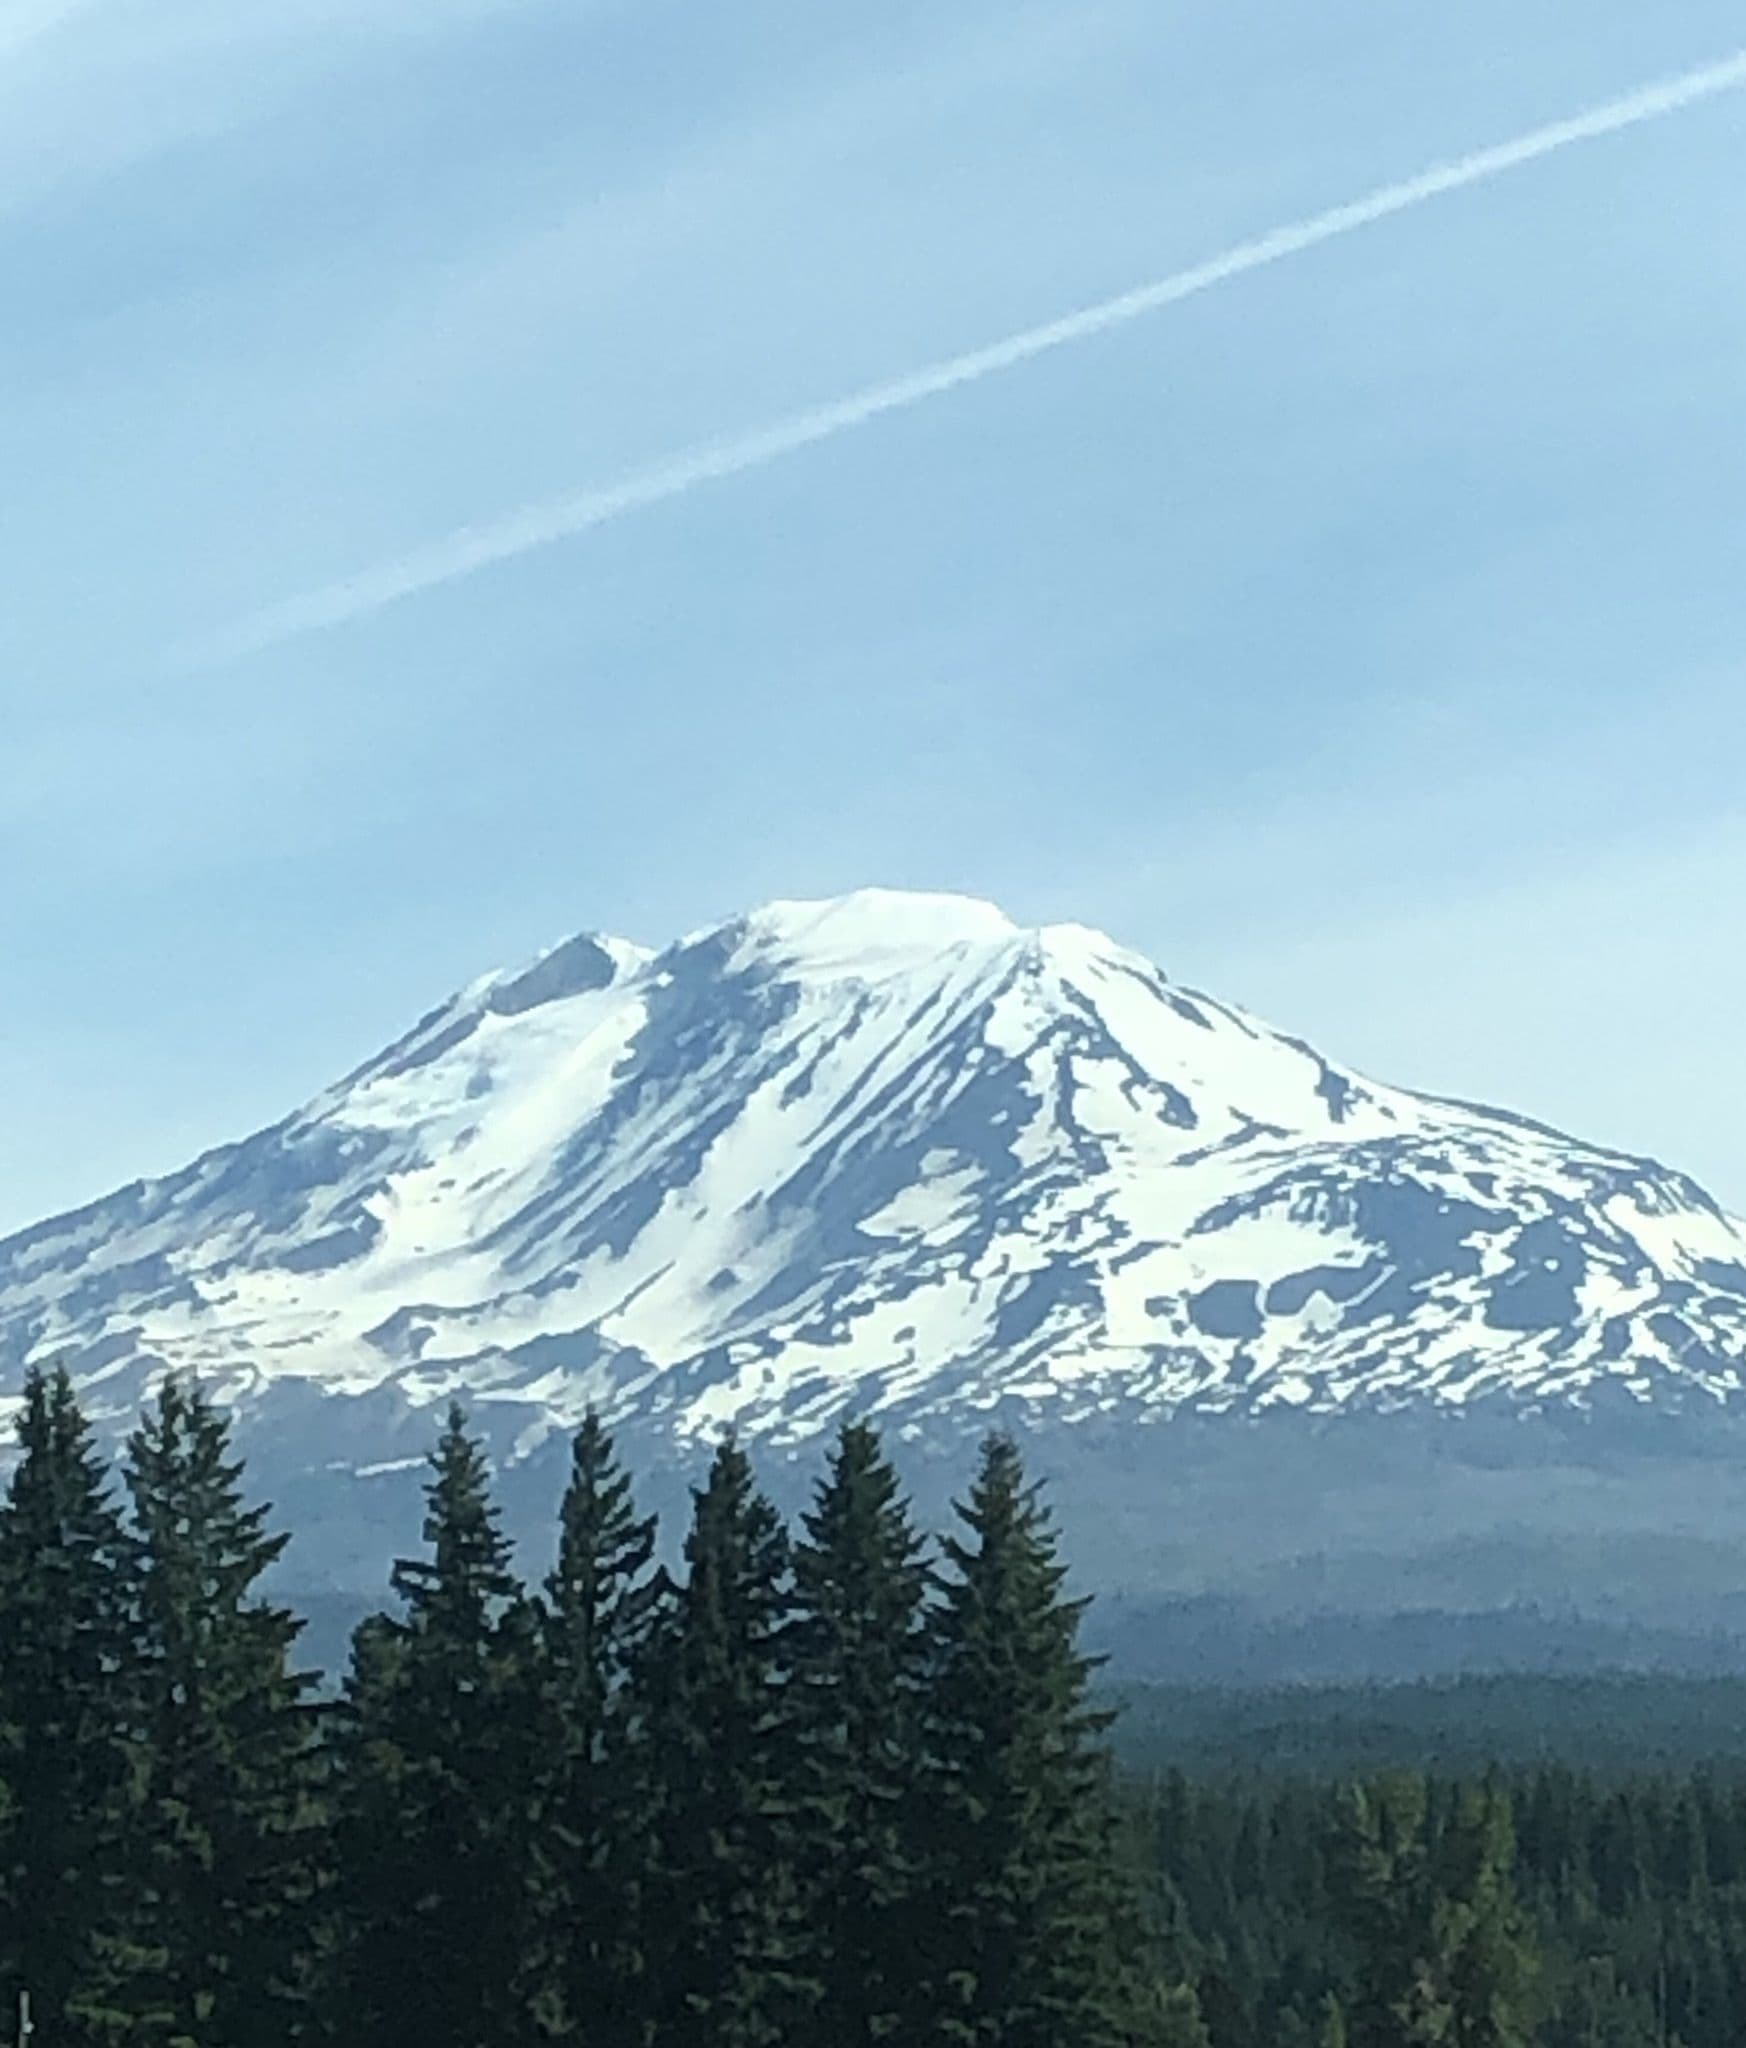 Mt. Adams from near Trout Lake and NF-23.